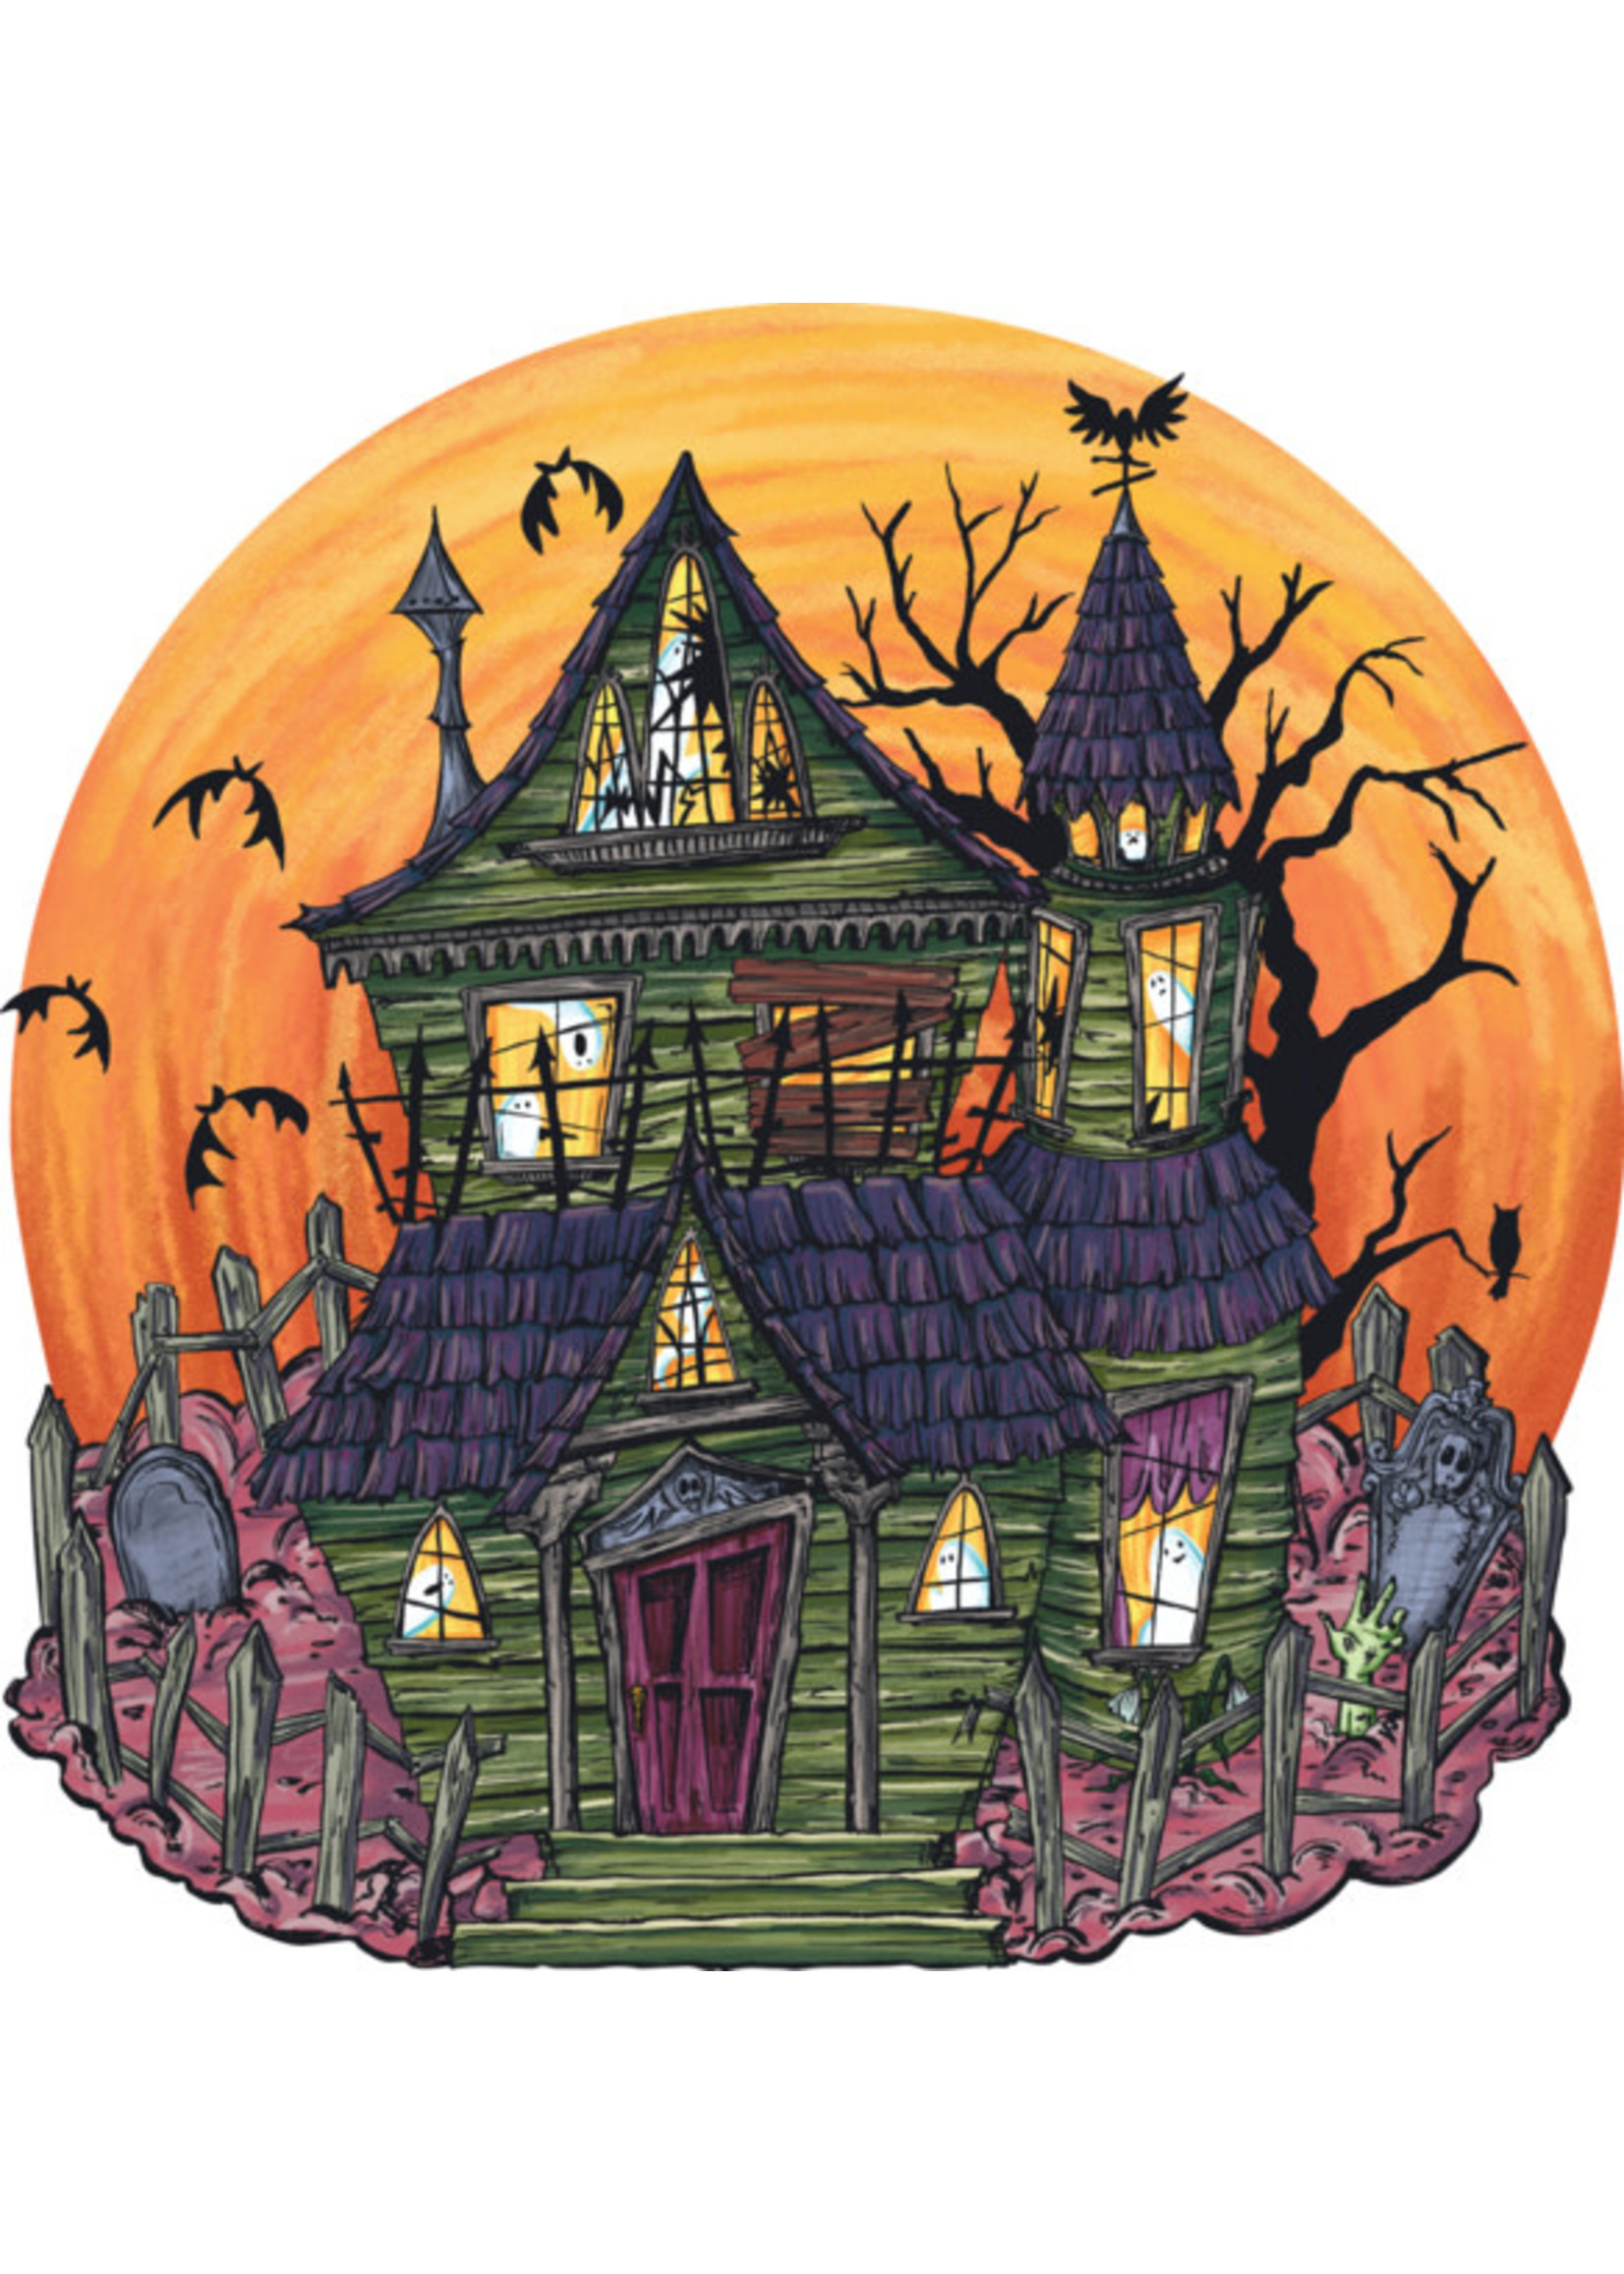 Hester & Cook Paper Placemats - Haunted House (12 sheets)